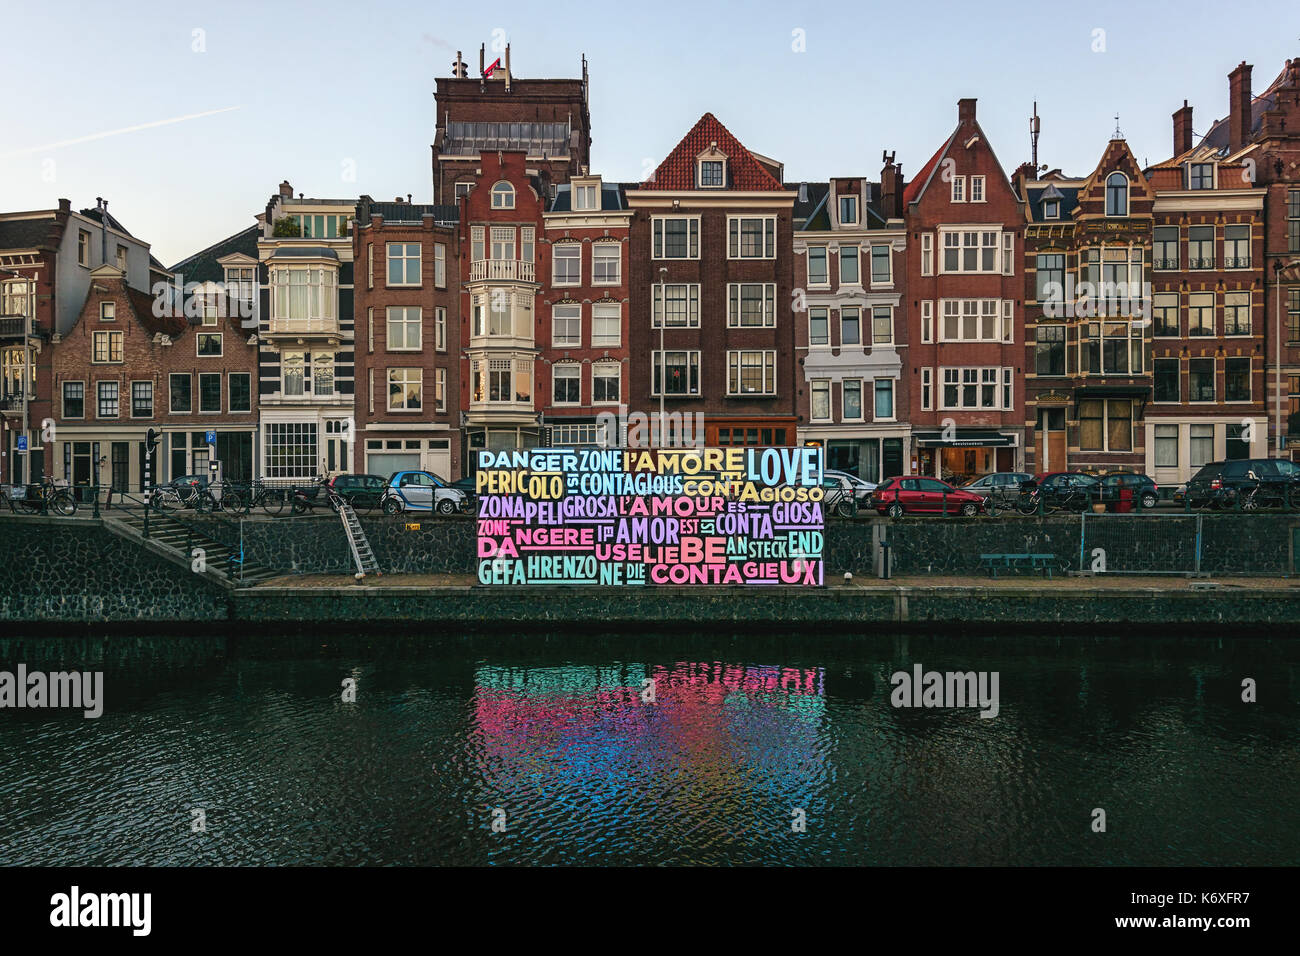 Amsterdam, Netherlands – January 5, 2017: Light Festival Amsterdam, a message of love in lights in an Amsterdam canal. - Stock Image